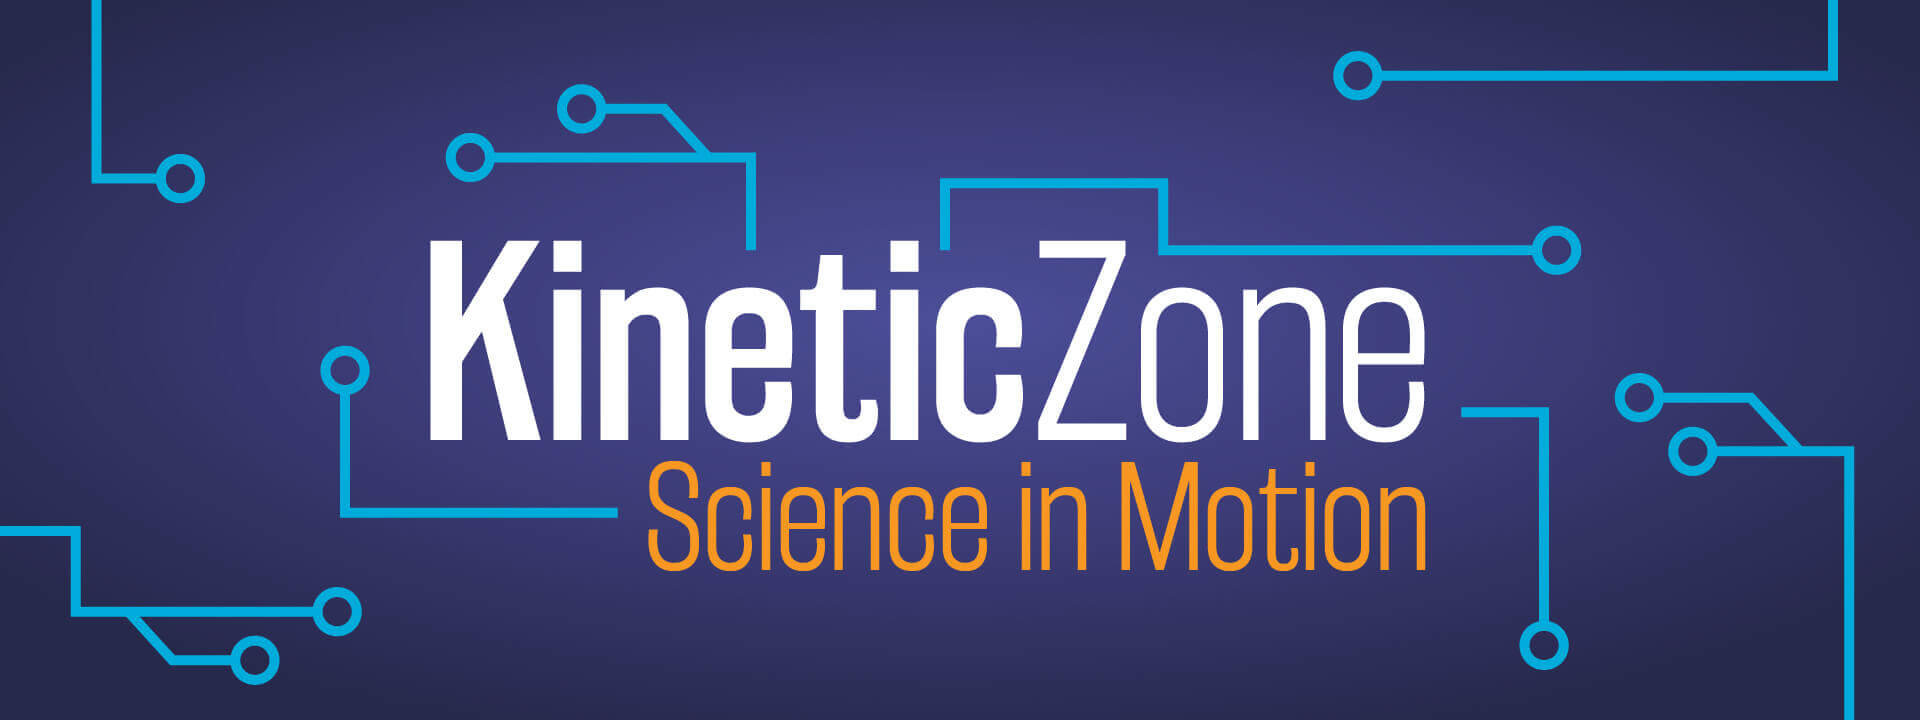 Kinetic Zone Science in Motion